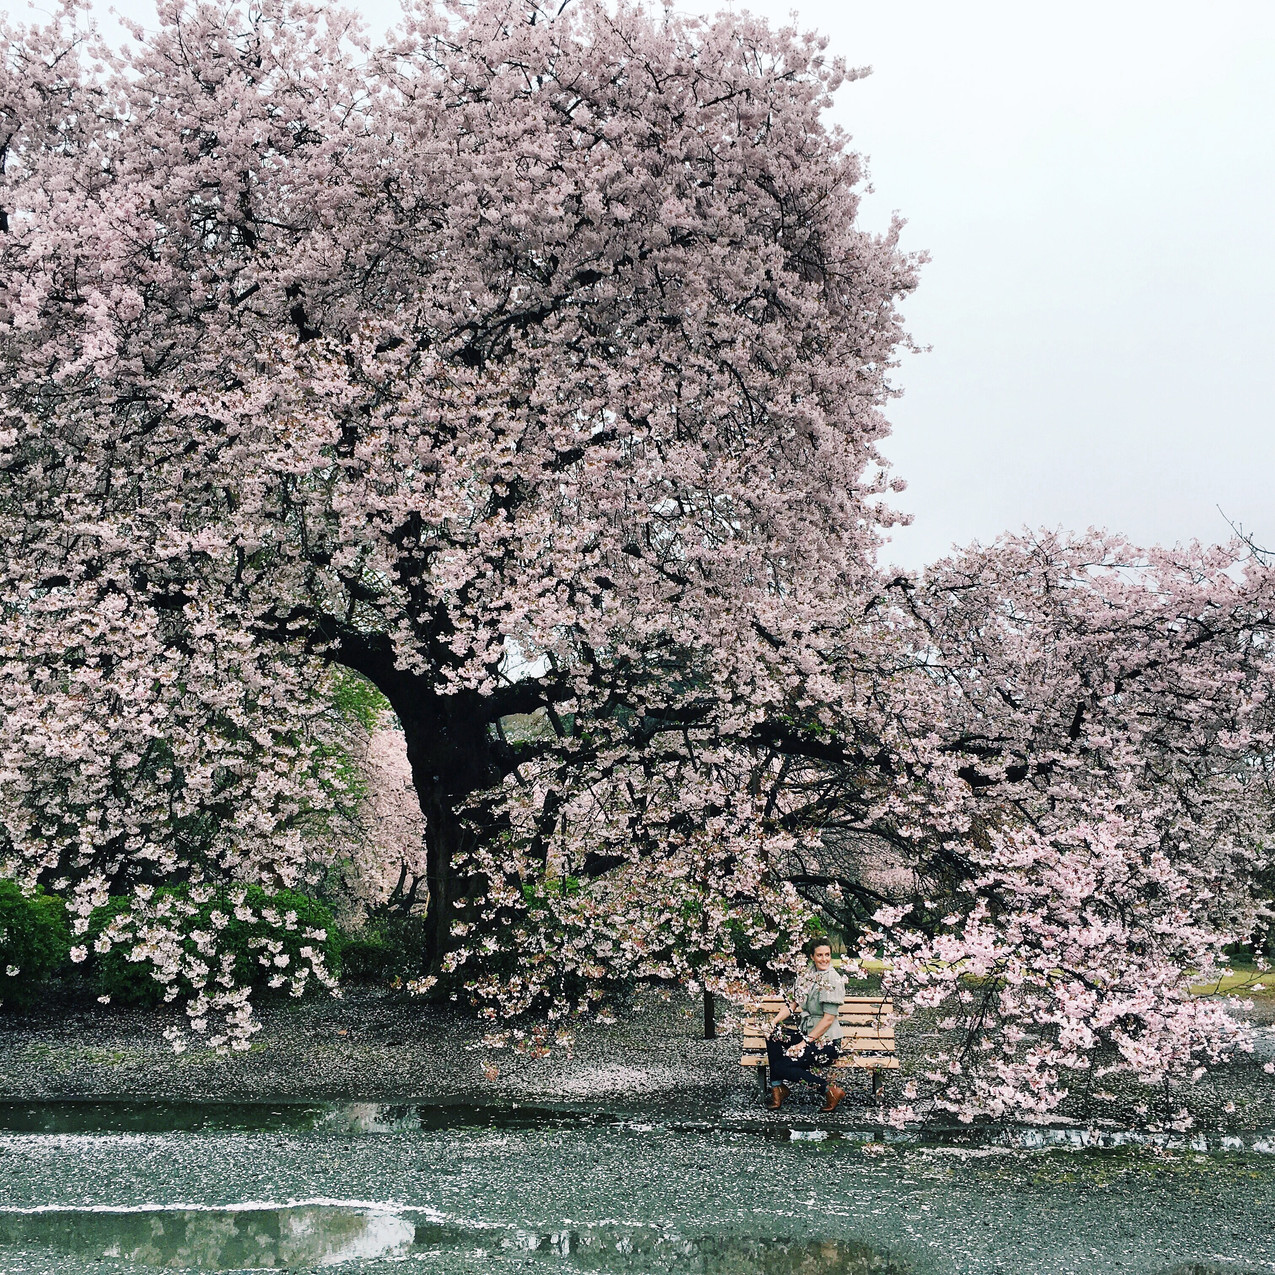 Cherry Blossoms in Japan, April 2016